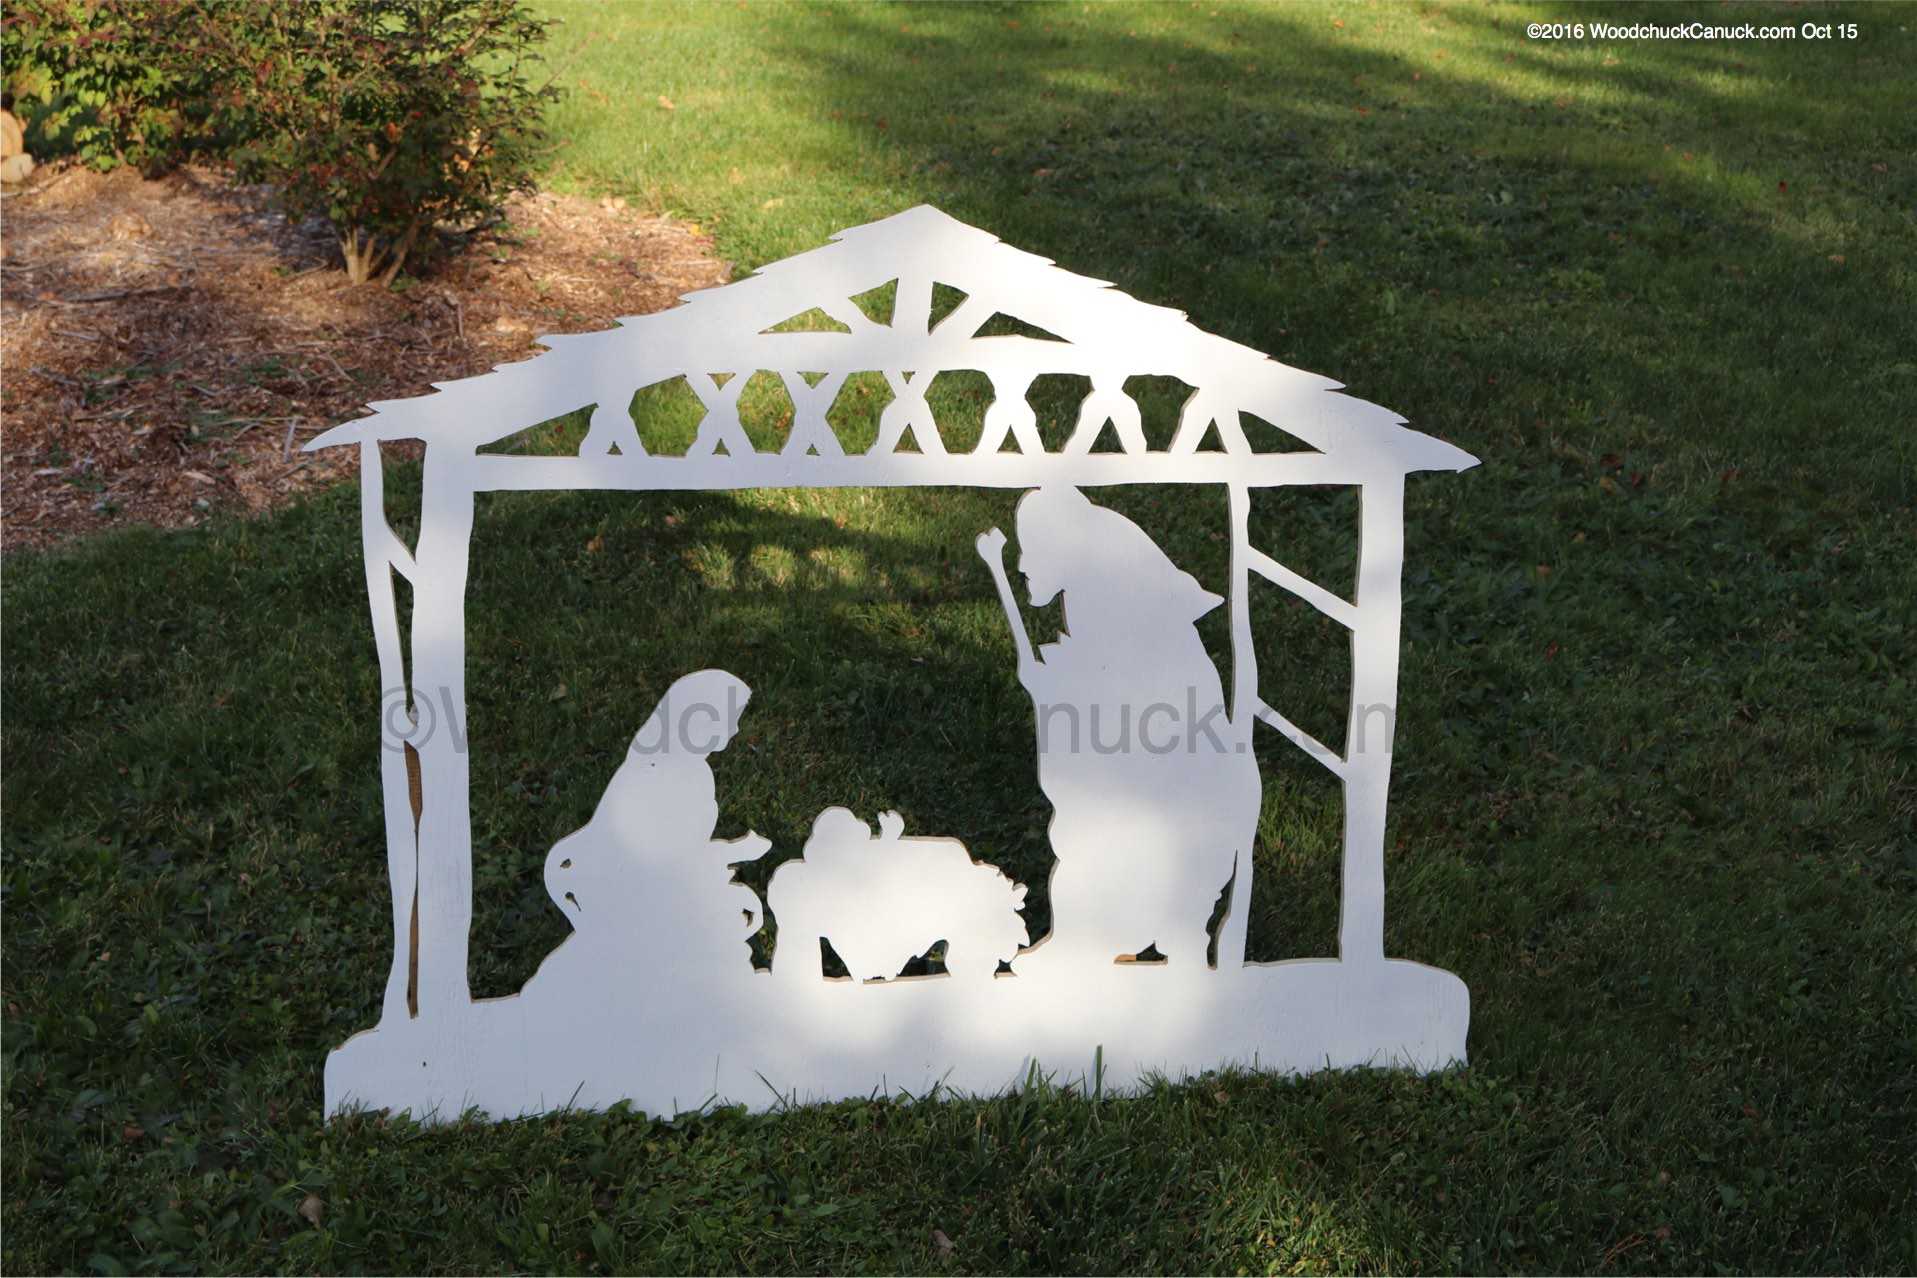 05-WC-1371 - Christmas Nativity Scene 2D Yard Art Woodworking Pattern